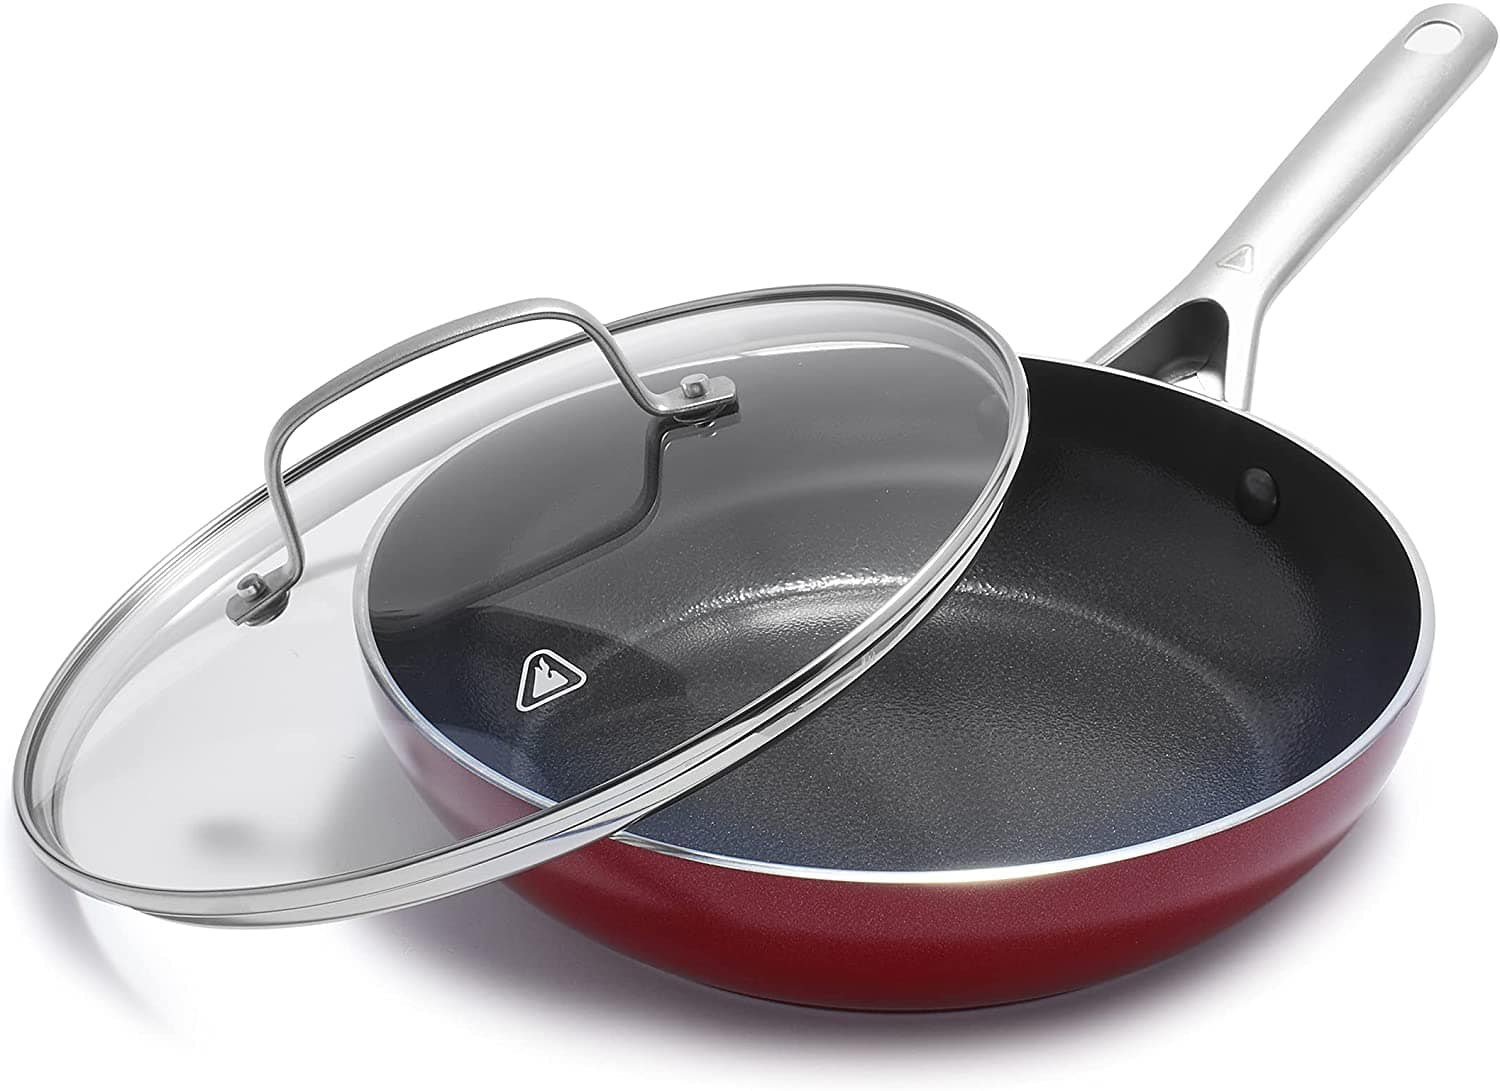 """11"""" Red Volcano Textured Ceramic Nonstick All Purpose Pan with Lid $19 + Free S/H w/ Prime"""